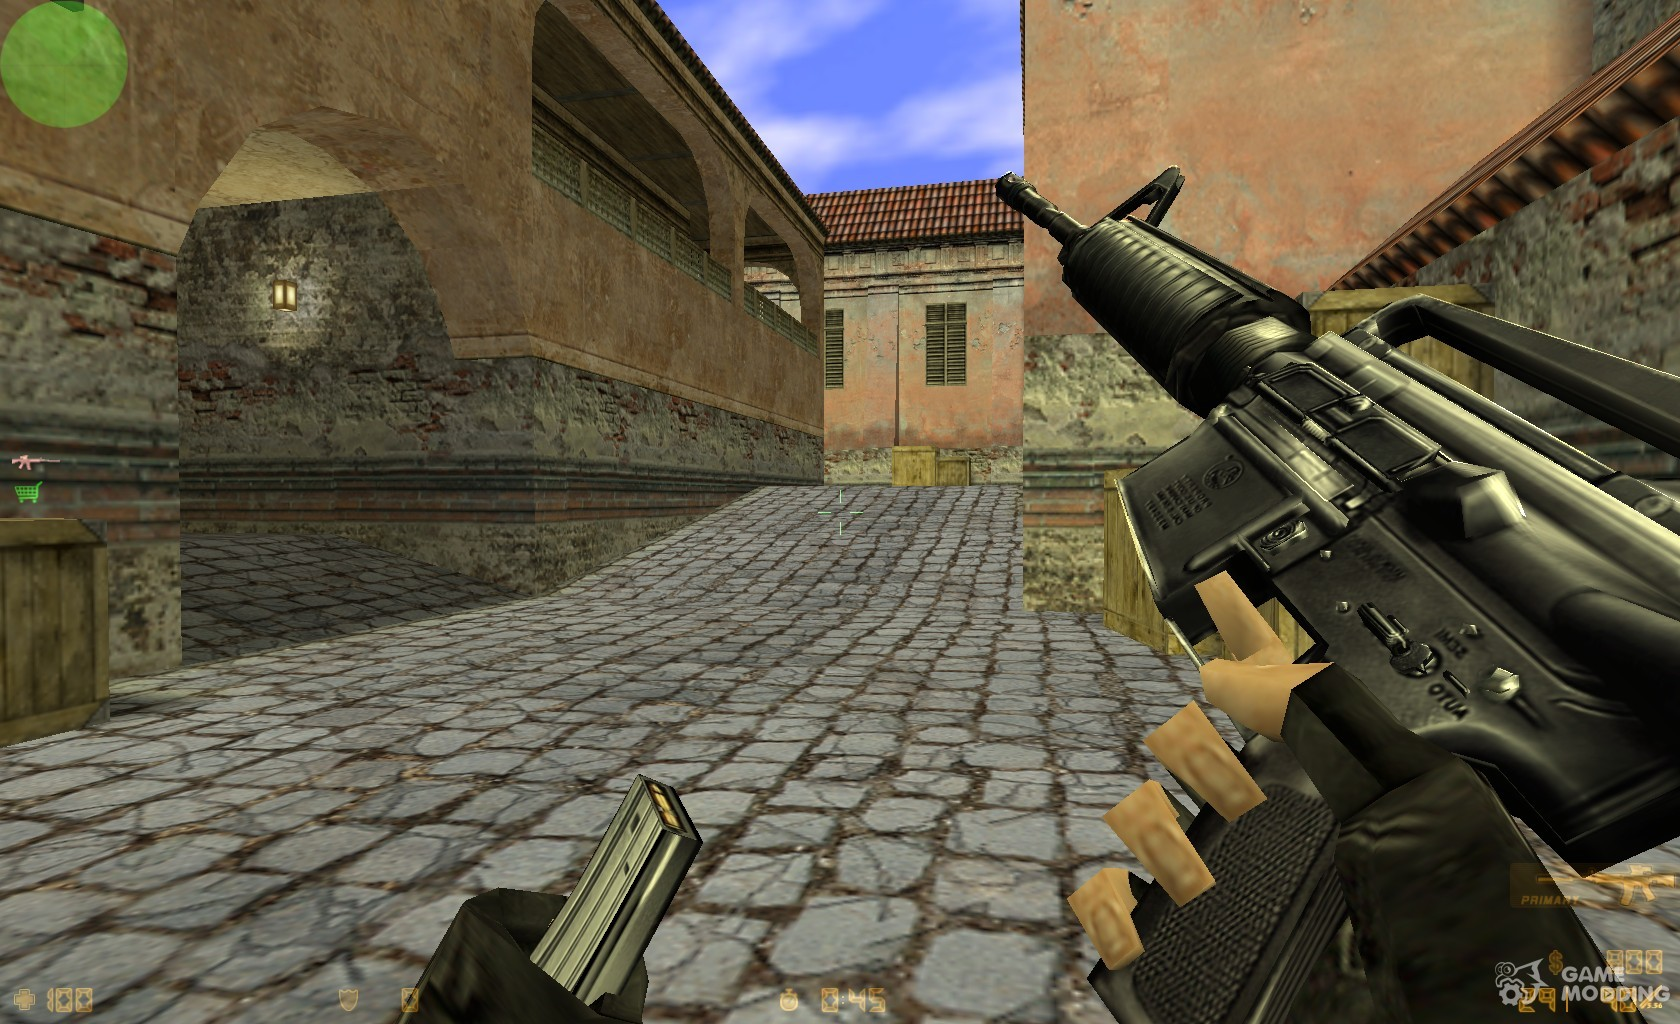 how to download counter strike source textures for gmod